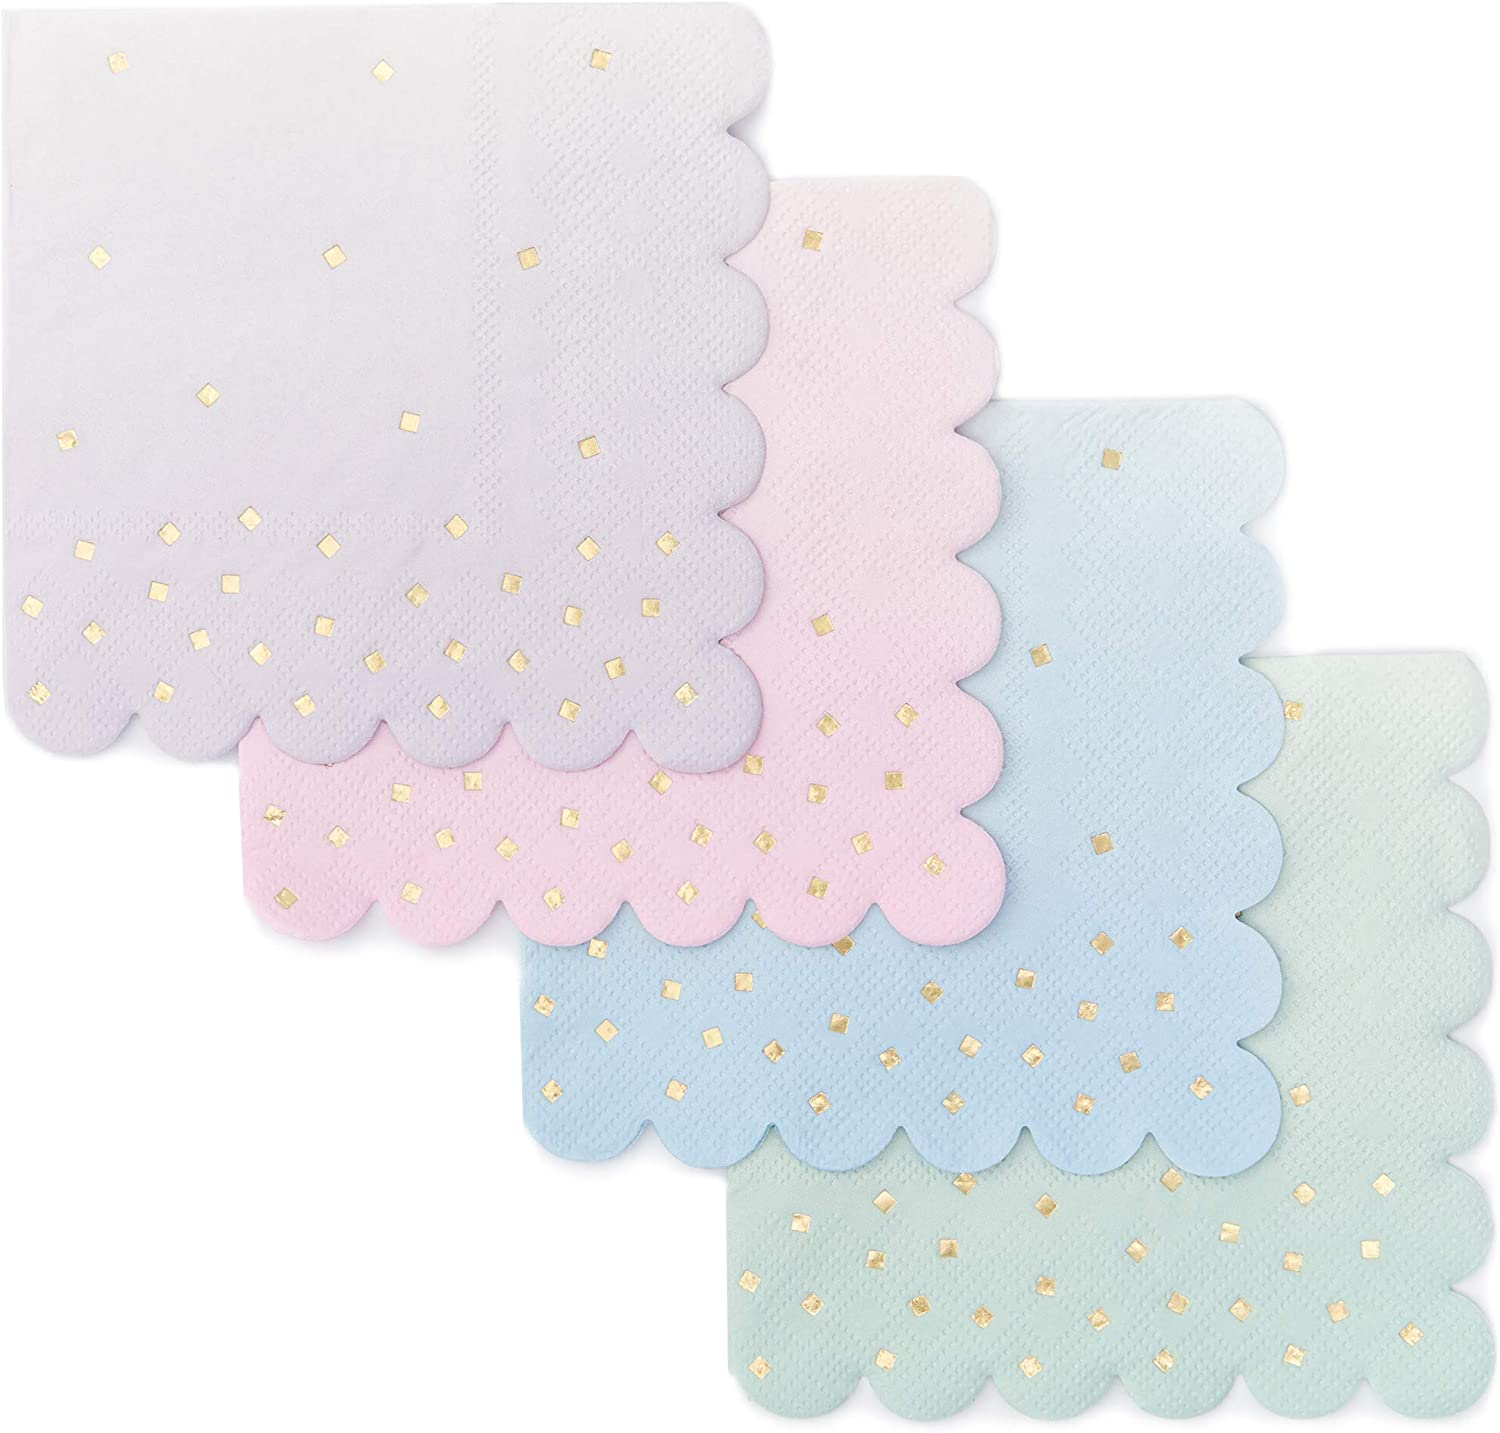 Ombre Cocktail Party Napkins (5 x 5 in, 4 Colors, 100-Pack)